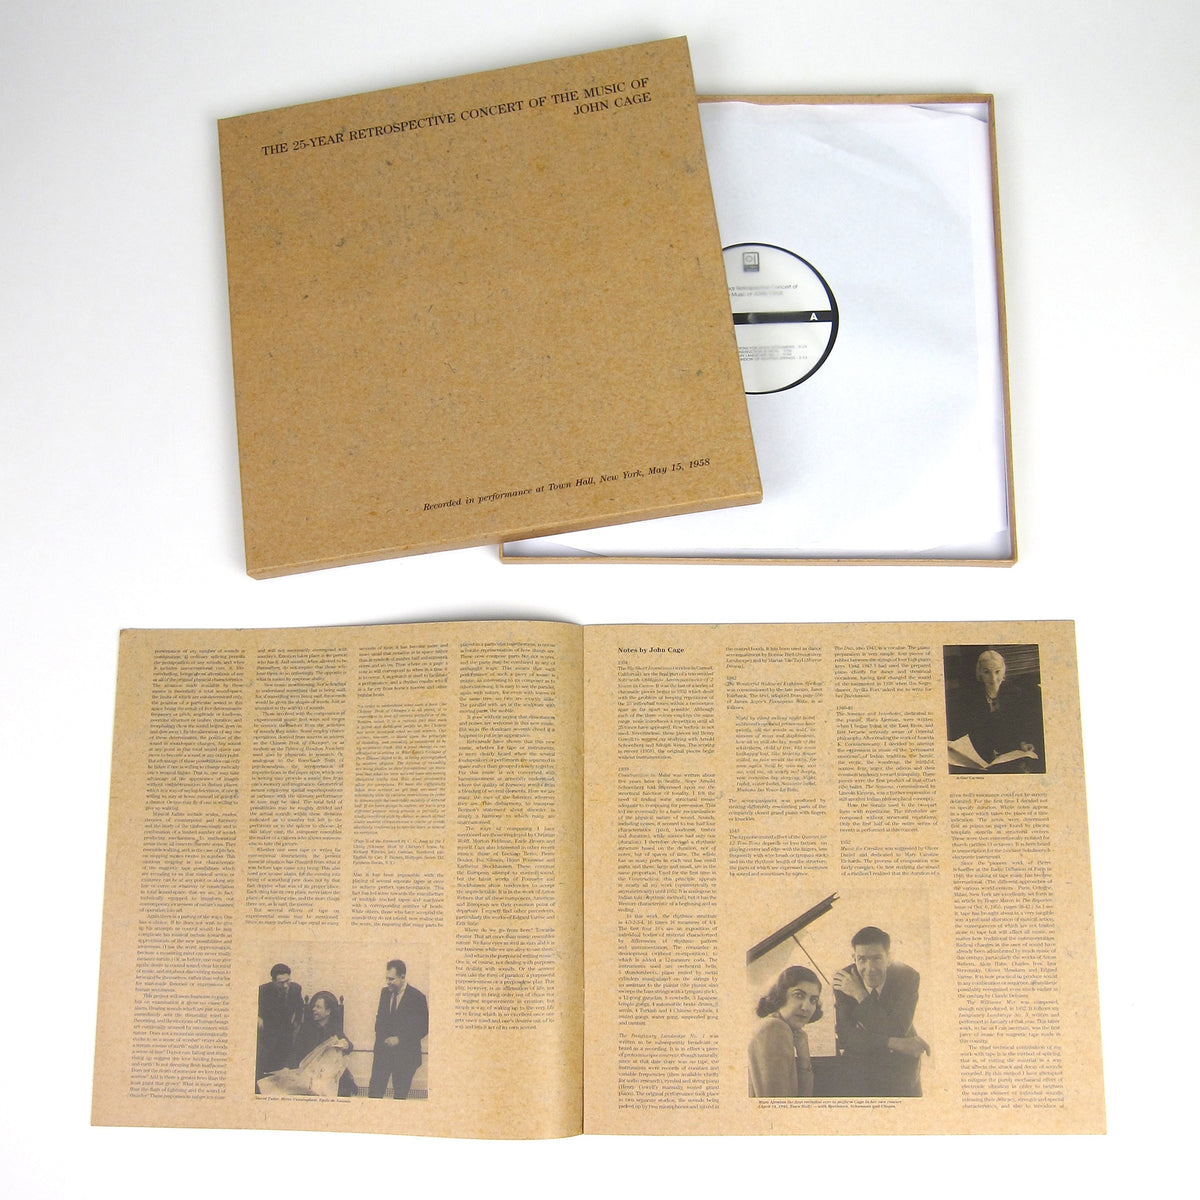 John Cage: The 25-Year Retrospective Concert of the Music of John Cage Vinyl 2LP Boxset